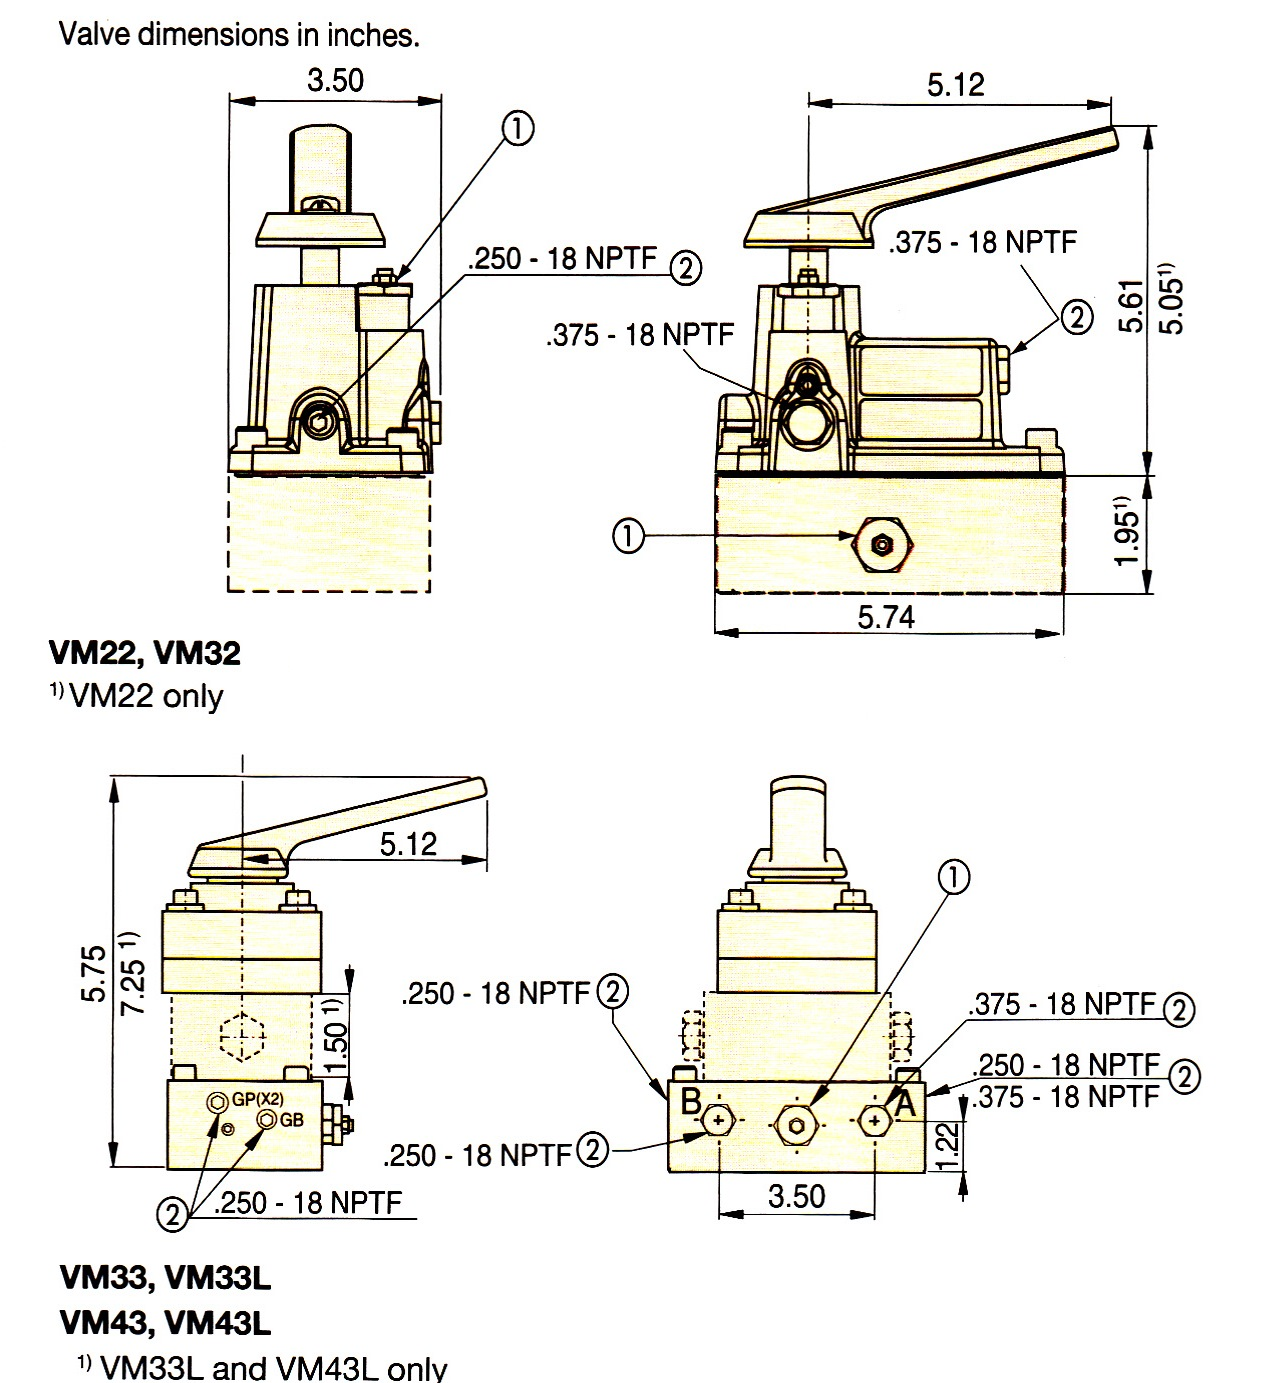 3 Way Hydraulic Valves Diagram Full Hd Version Valves